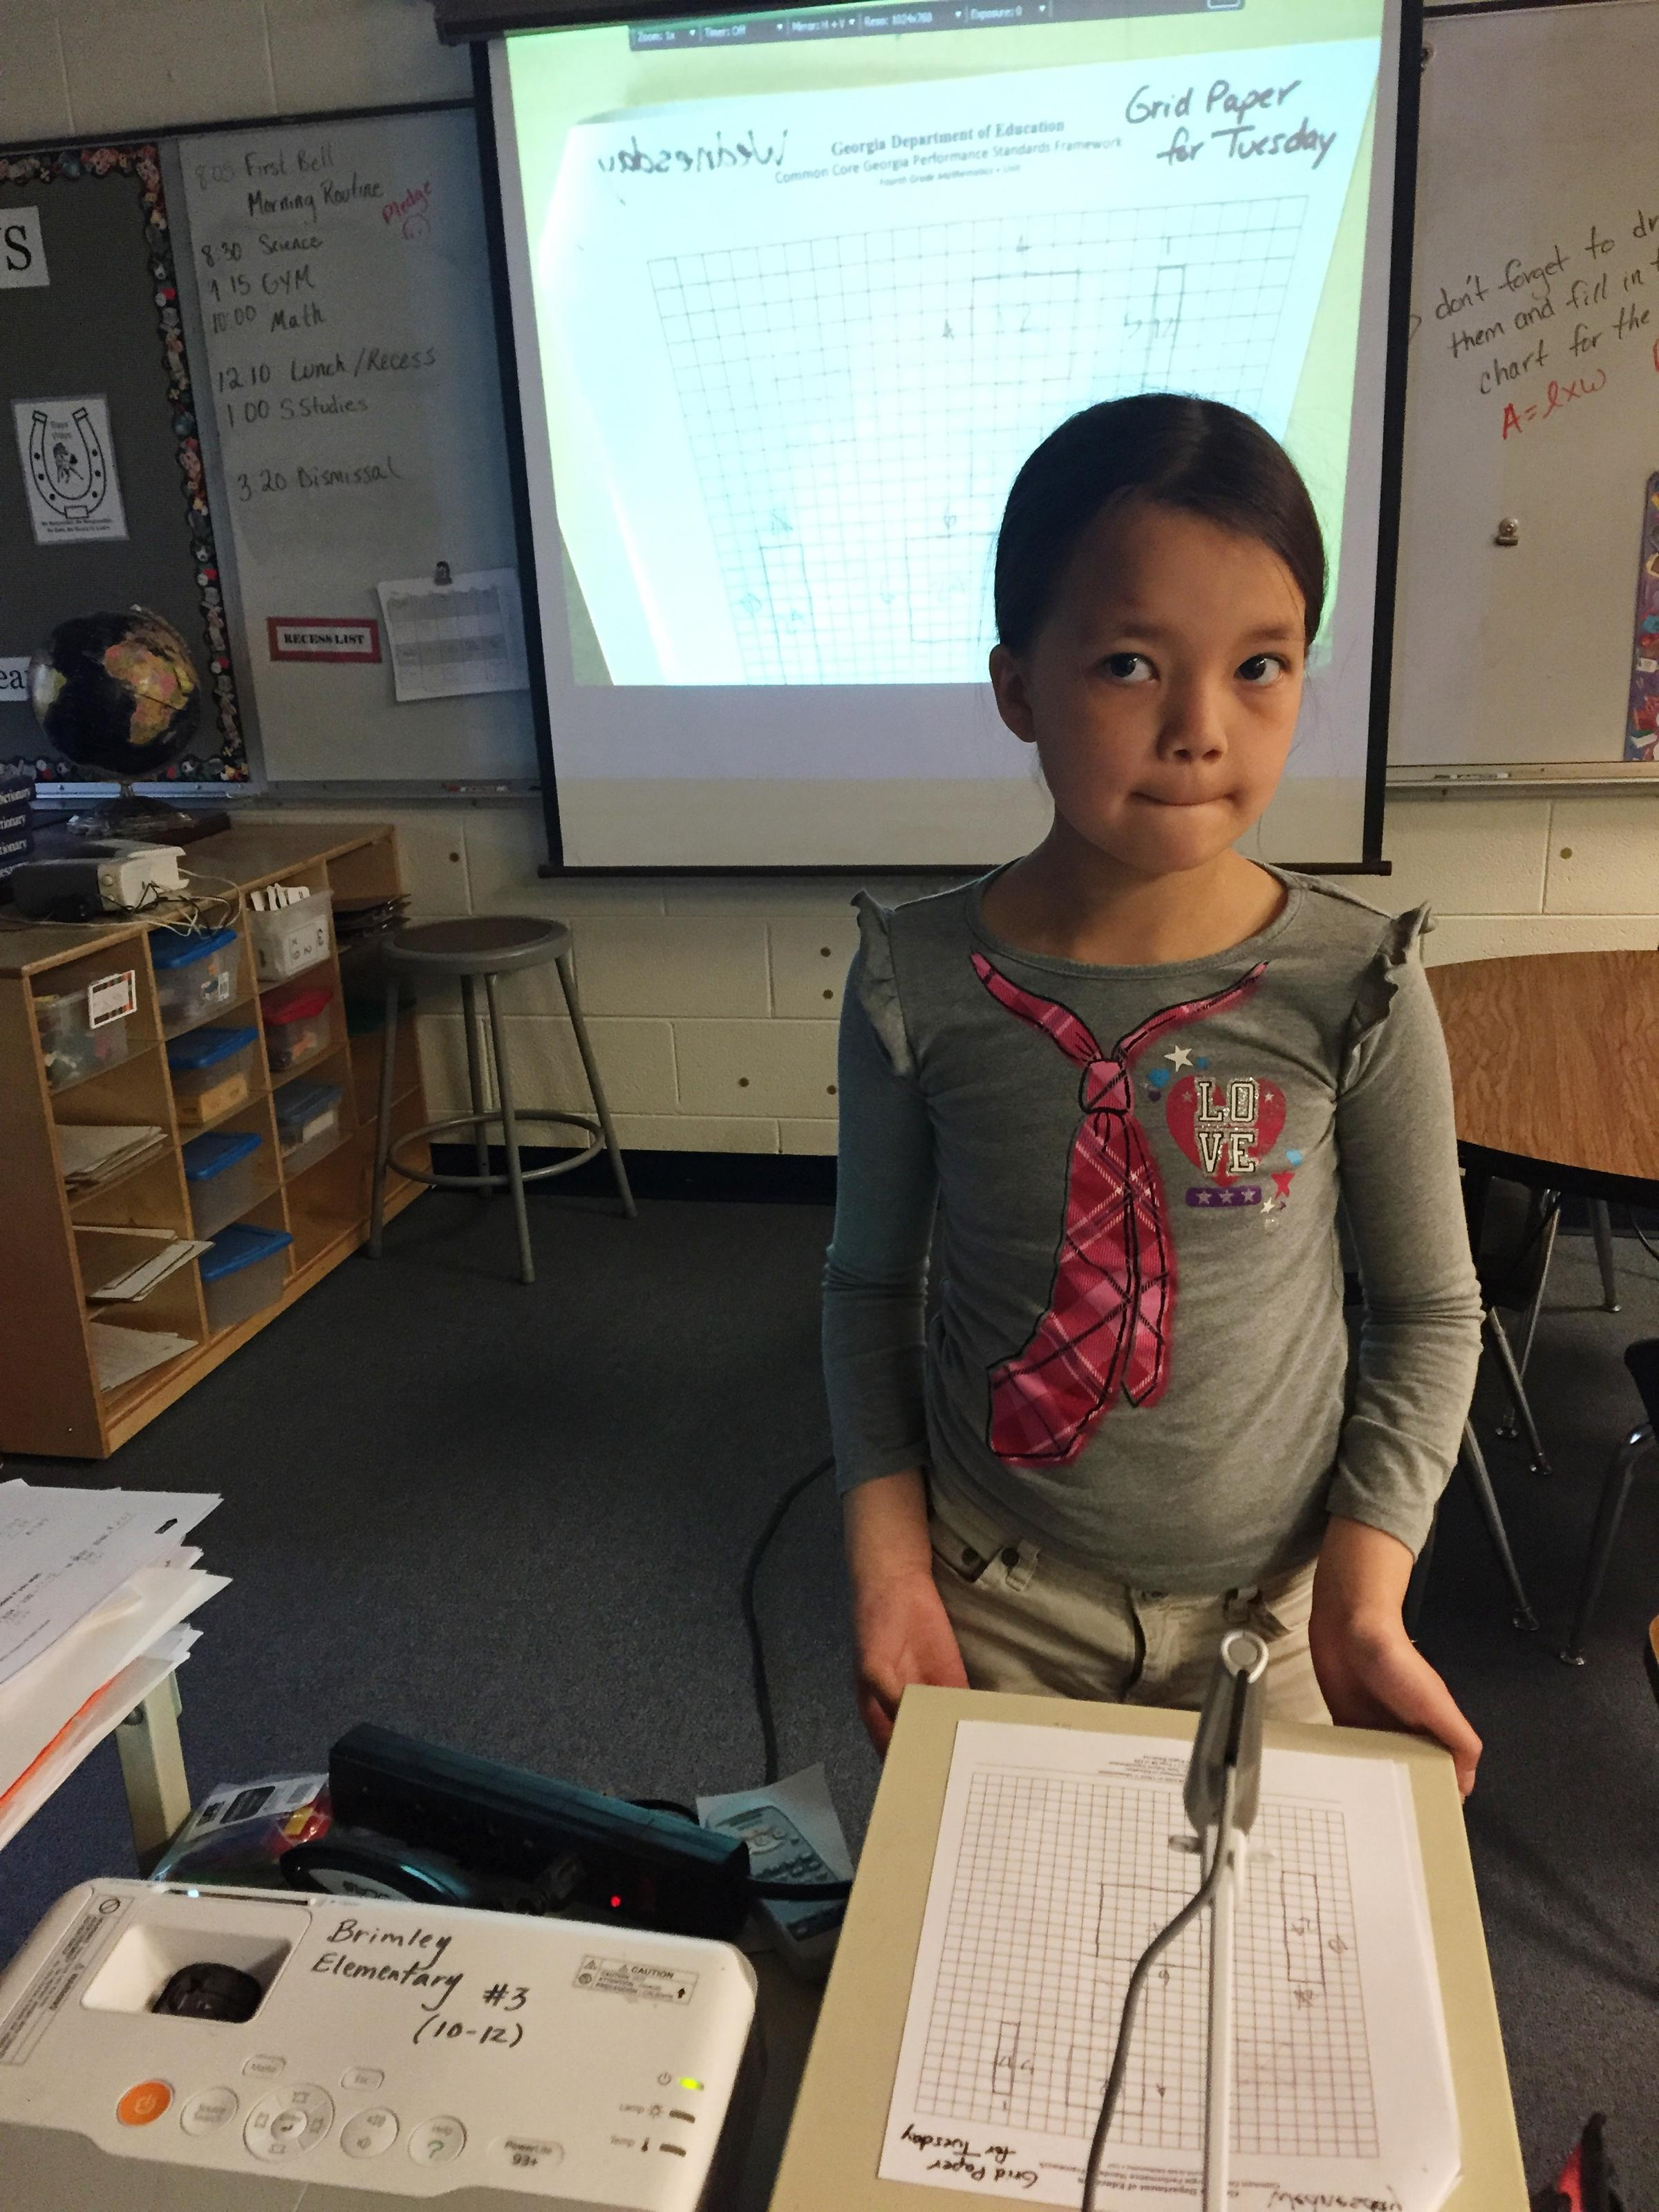 American Indian Low Income Kids Often Struggle